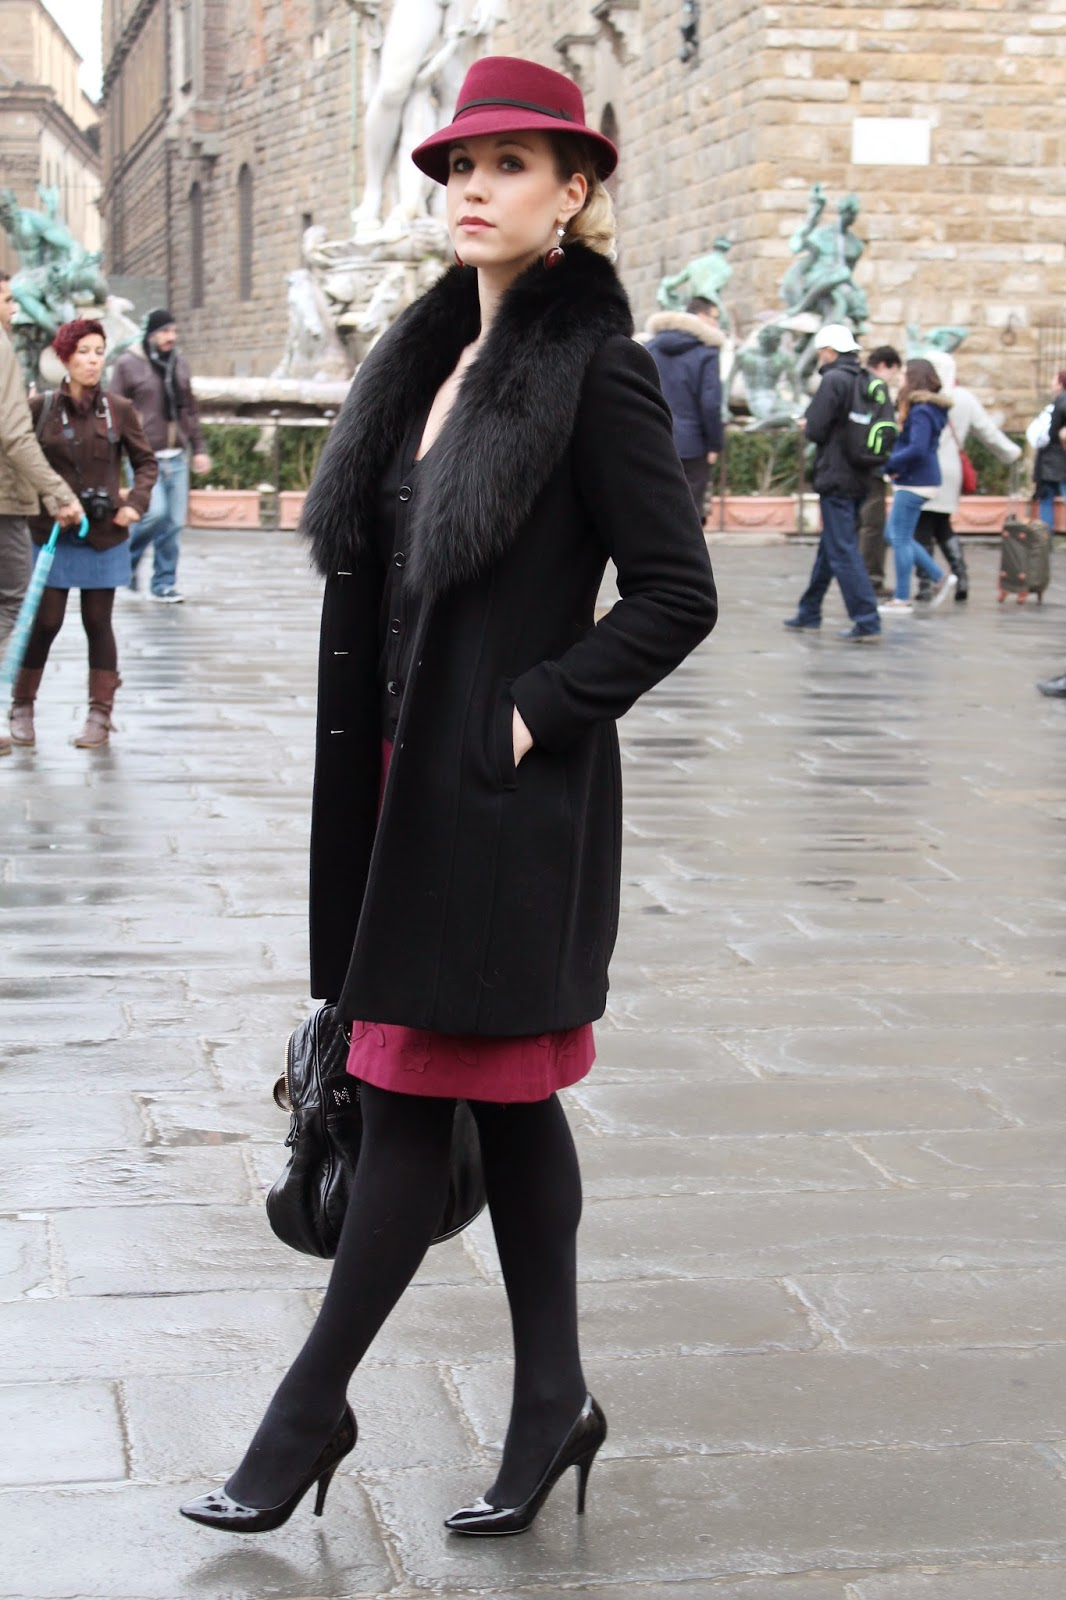 elegant chic winter outfit